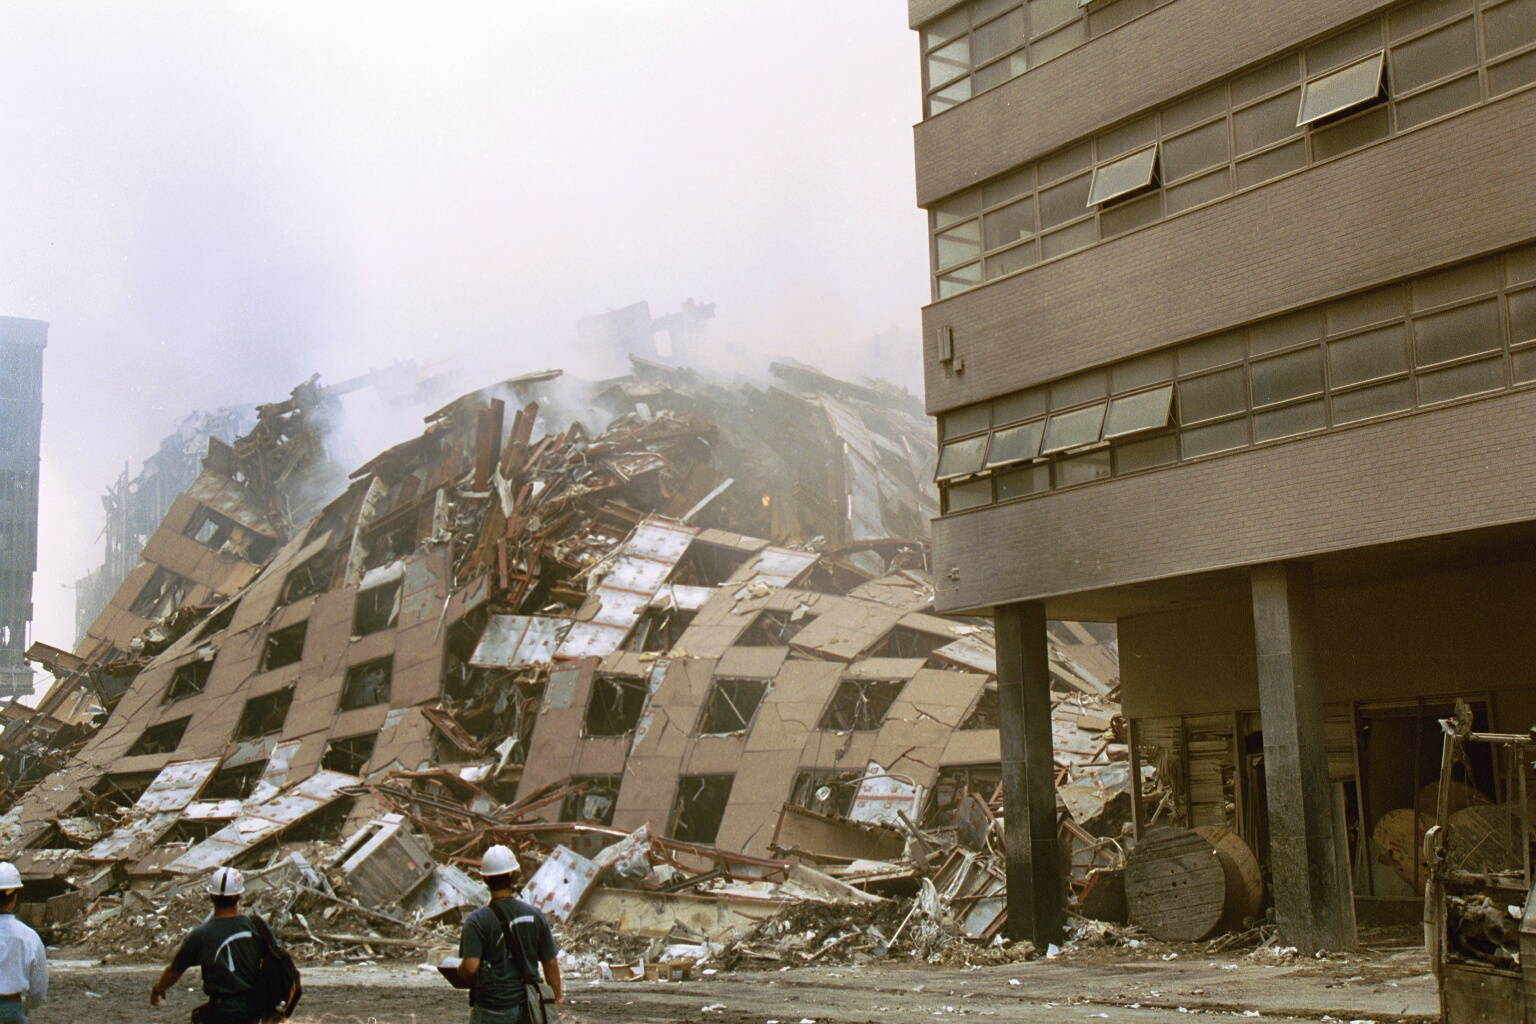 Building Falling Down : New wtc complex photos highlight bizarre building collapse